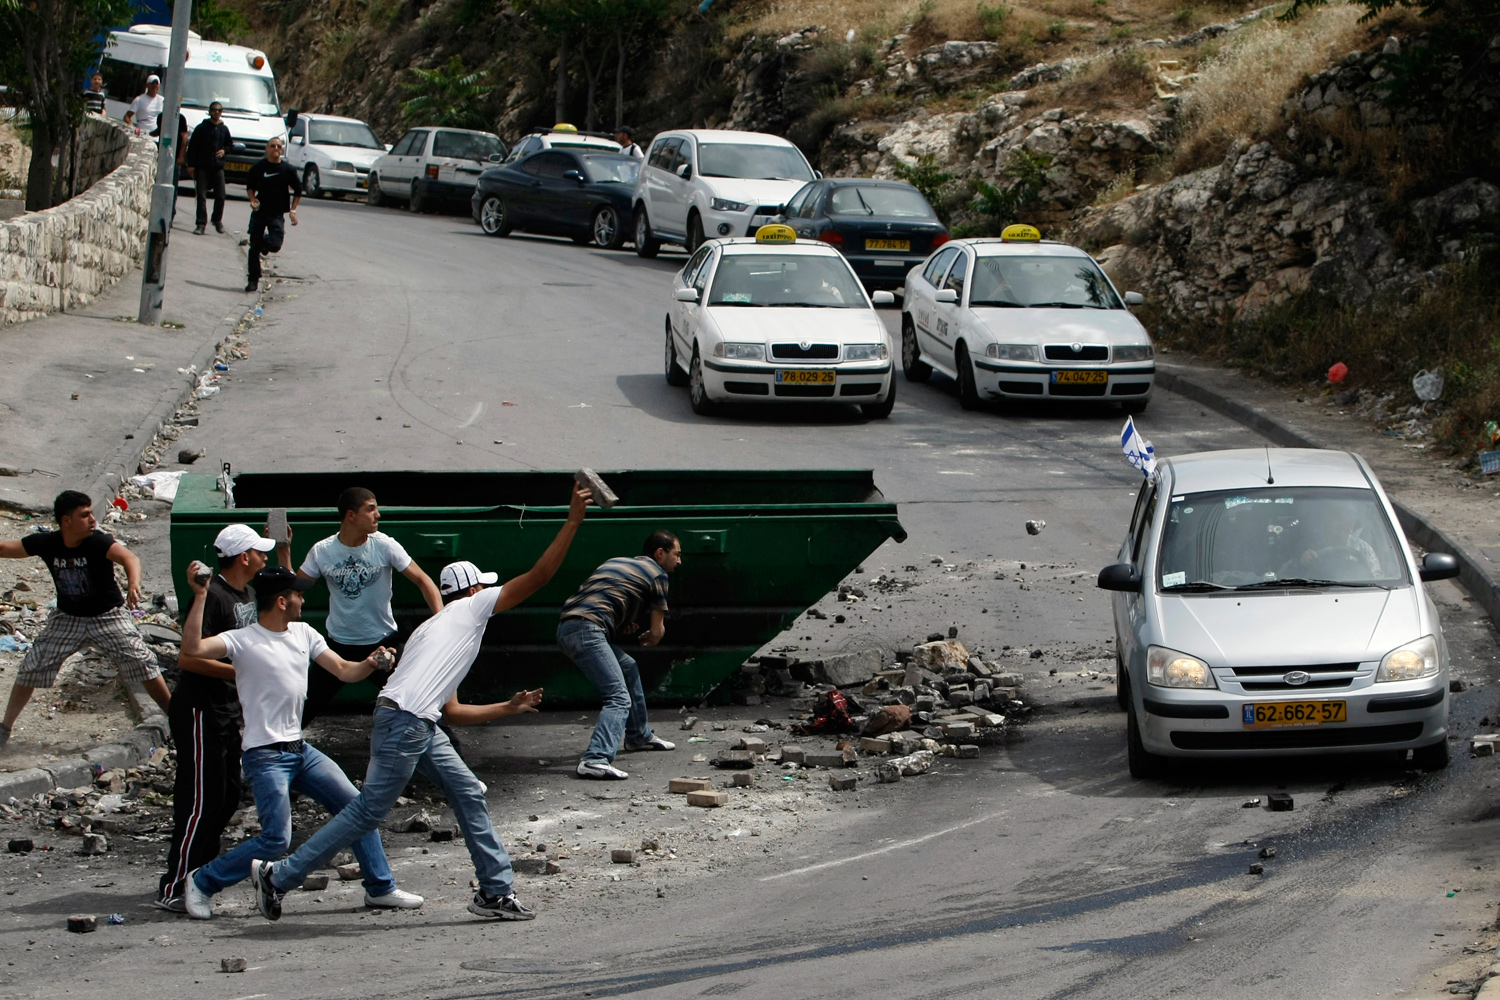 May 6, 2011. Palestinian youths throw bricks and stones at an Israeli car that mistakenly drove into the mostly Arab neighborhood of Silwan in East Jerusalem.